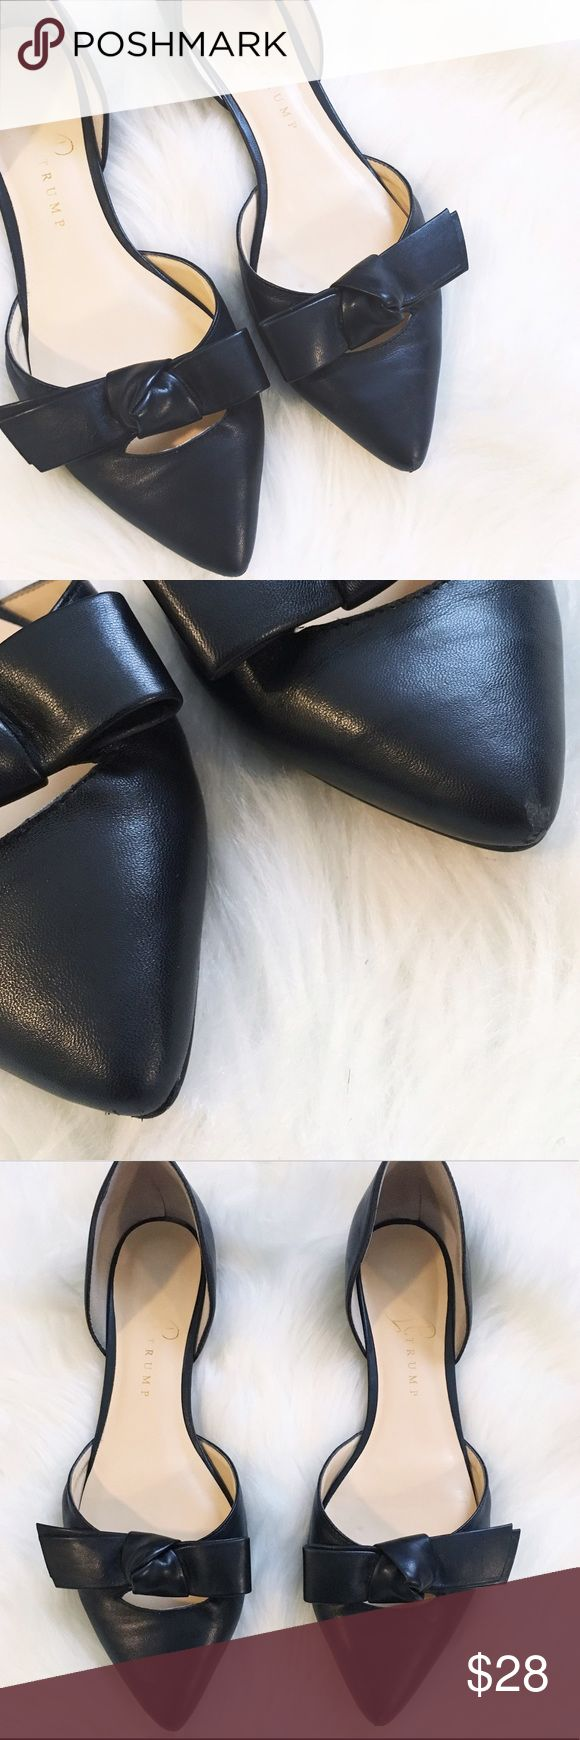 ♠️ Ivanka Trump Loire Bow Flat ♠️ Cutest flats ever! Love the bow detail. Shoe is smooth. Please see photos for minimal wear. Ivanka Trump Shoes Flats & Loafers